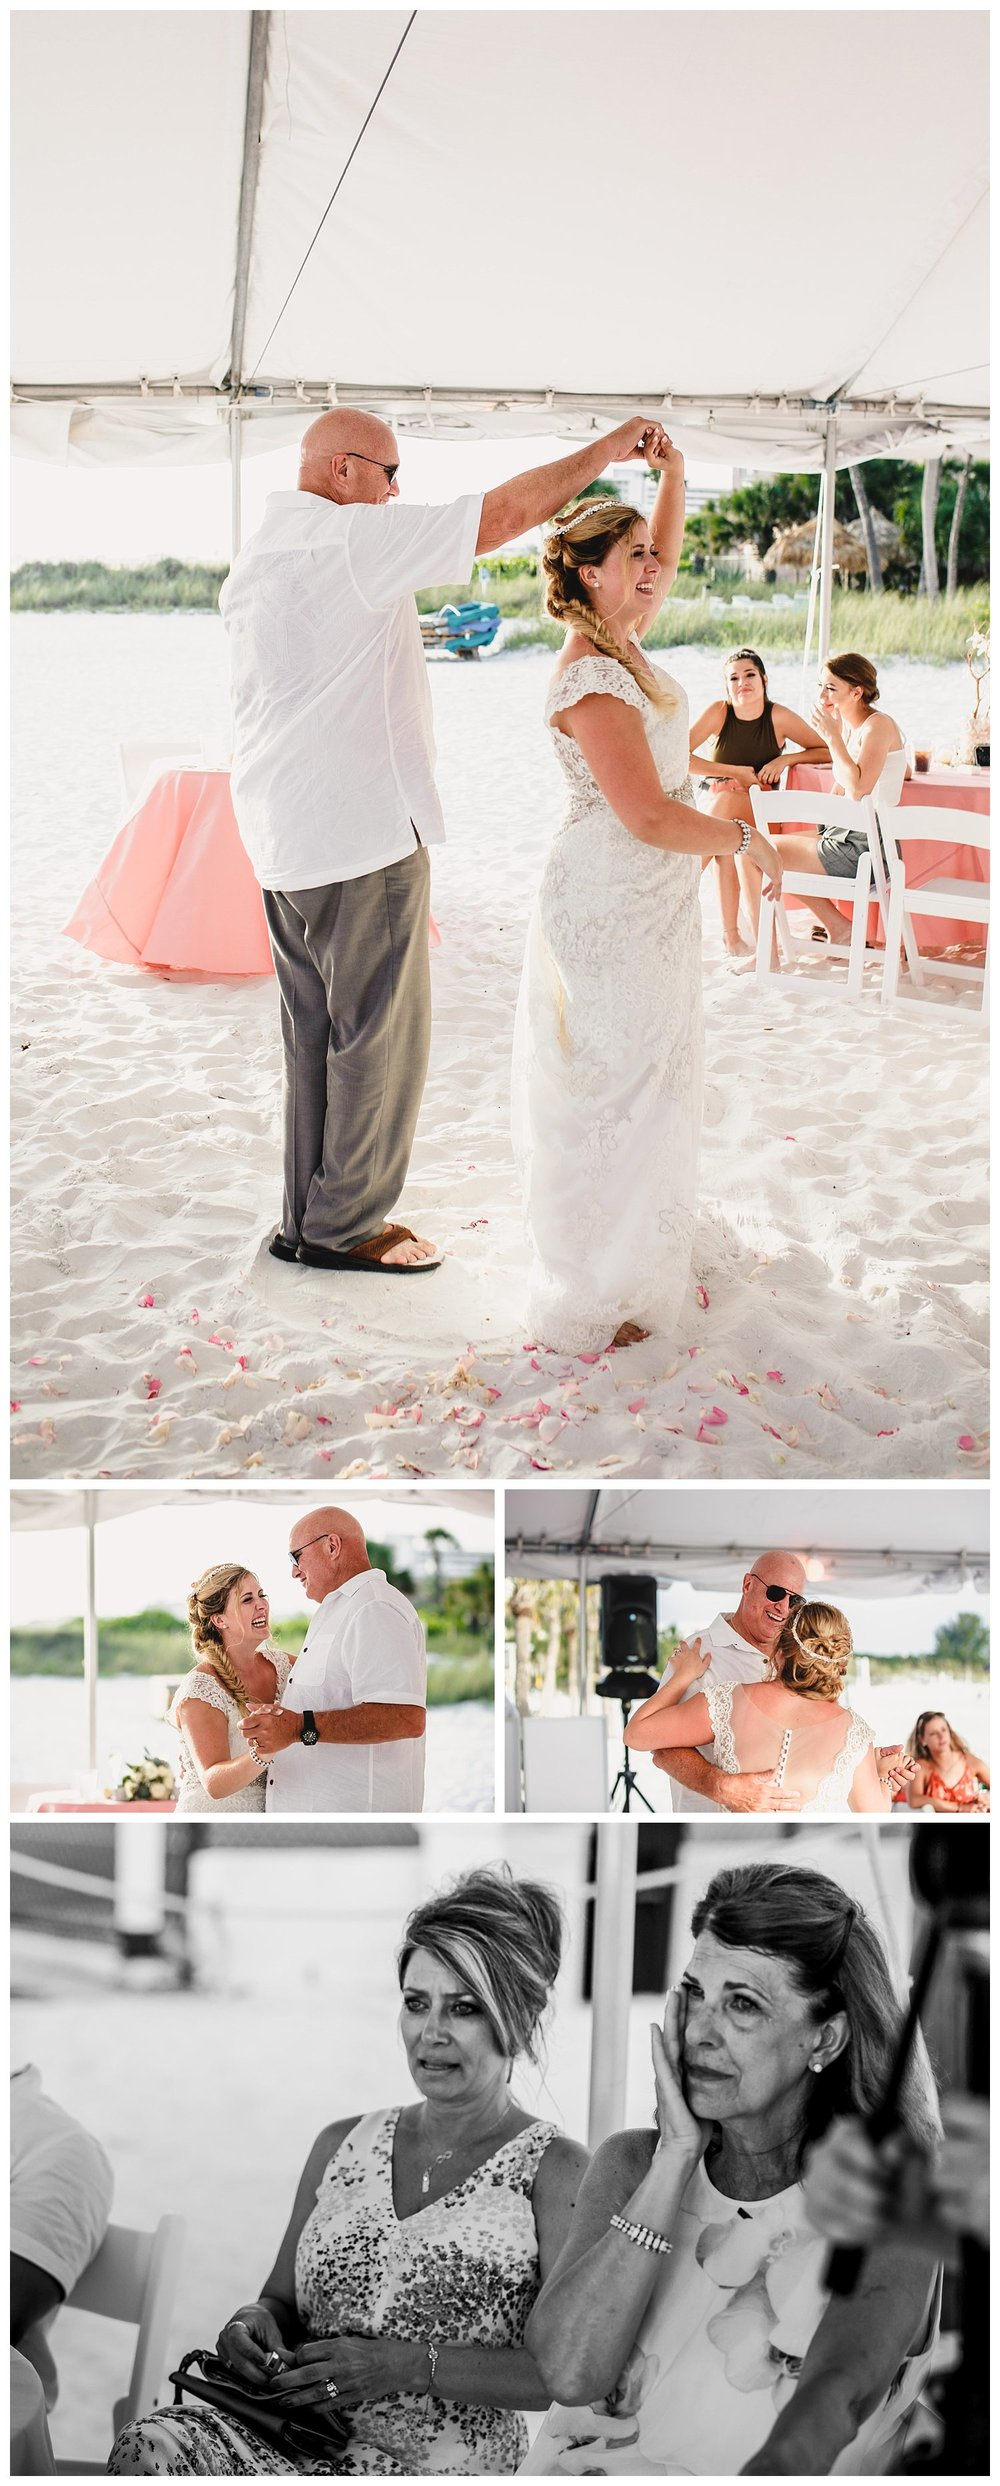 Kelsey_Diane_Photography_Destination_Wedding_Sarasota_Florida_Beach_Wedding_Alex_Austin_0668.jpg